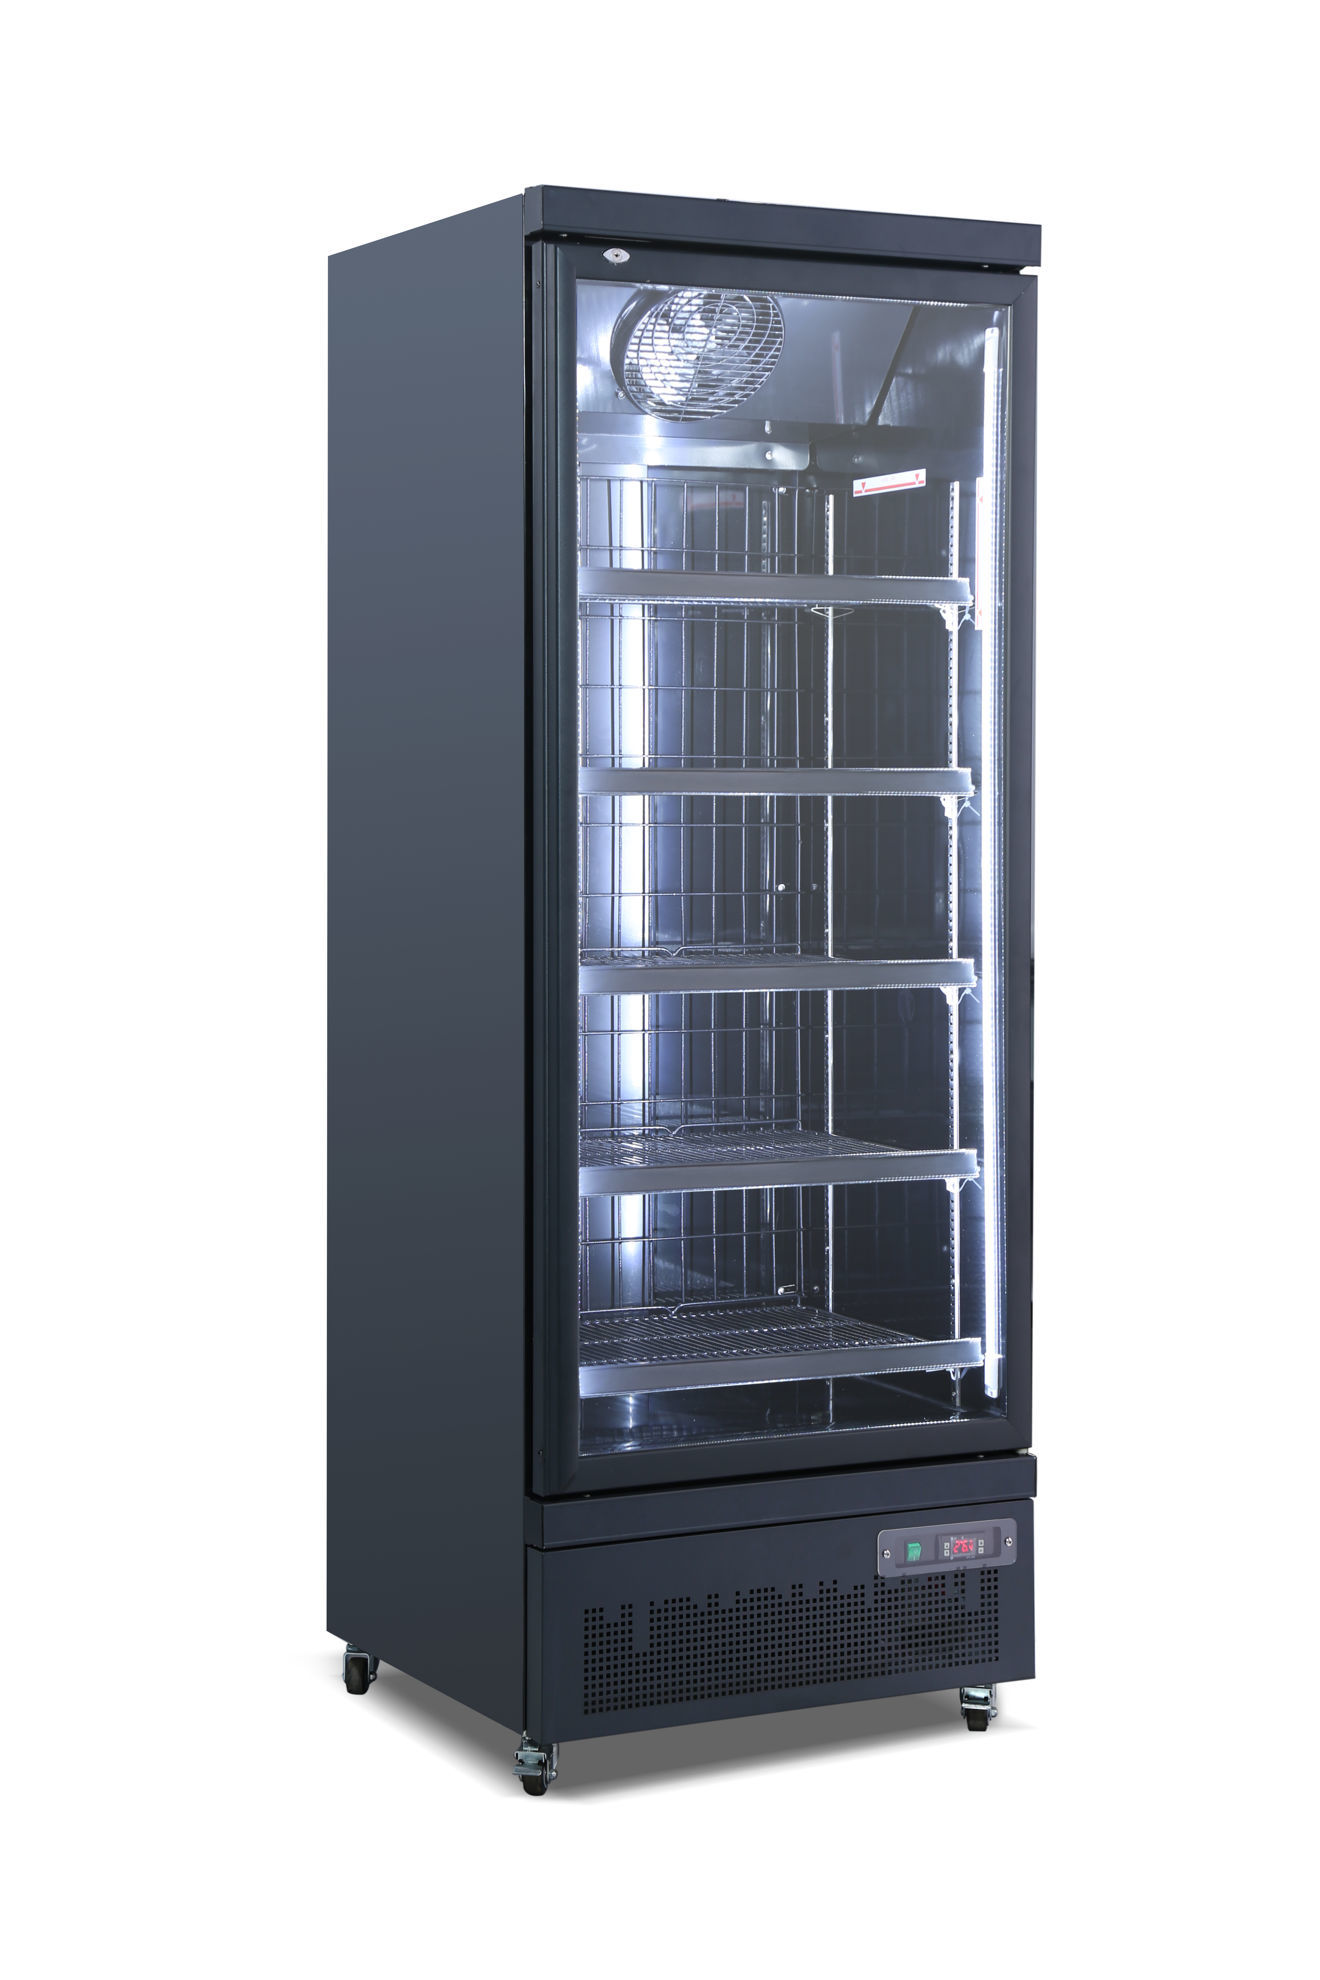 Picture of ICCOLD FD BS75AH Freezer